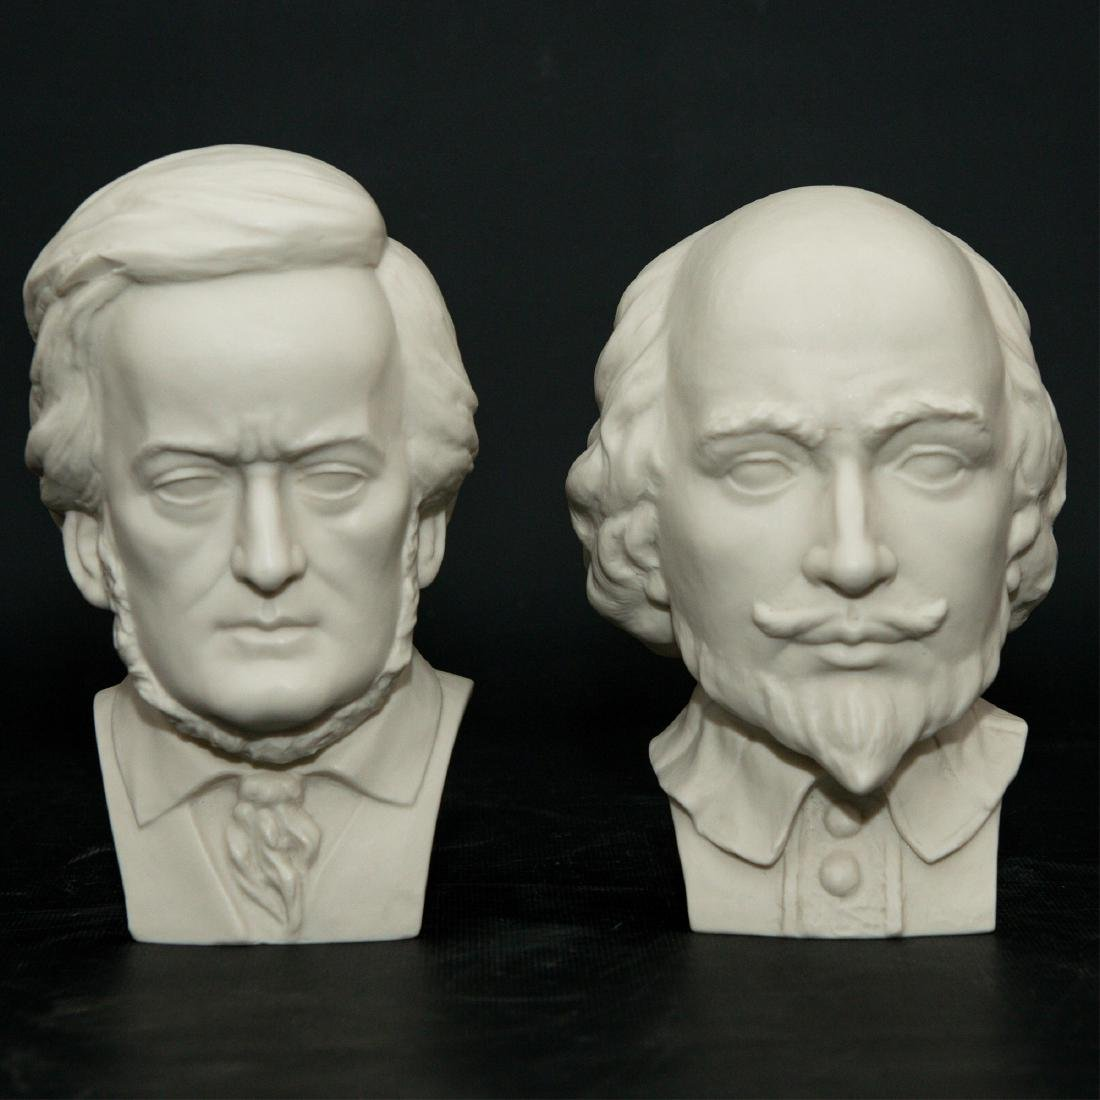 PAIR OF HUTSCHENREUTHER BISQUE PORCELAIN BUSTS